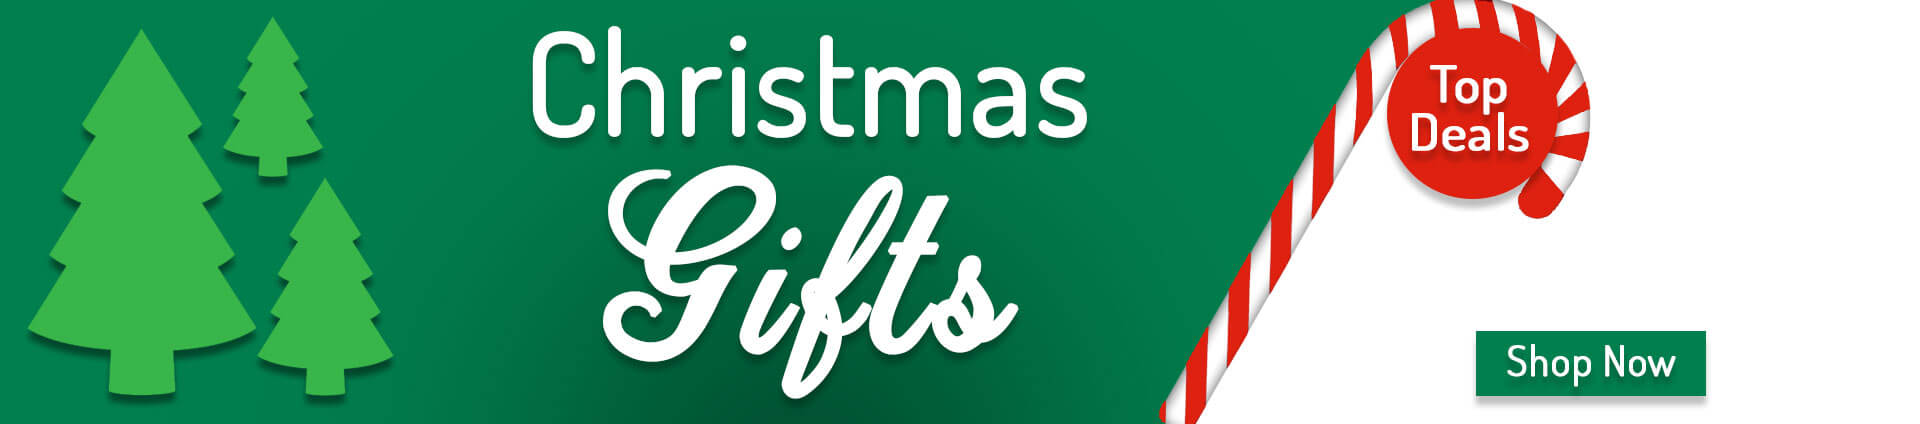 Christmas Gift Ideas here at Golfgeardirect.co.uk.